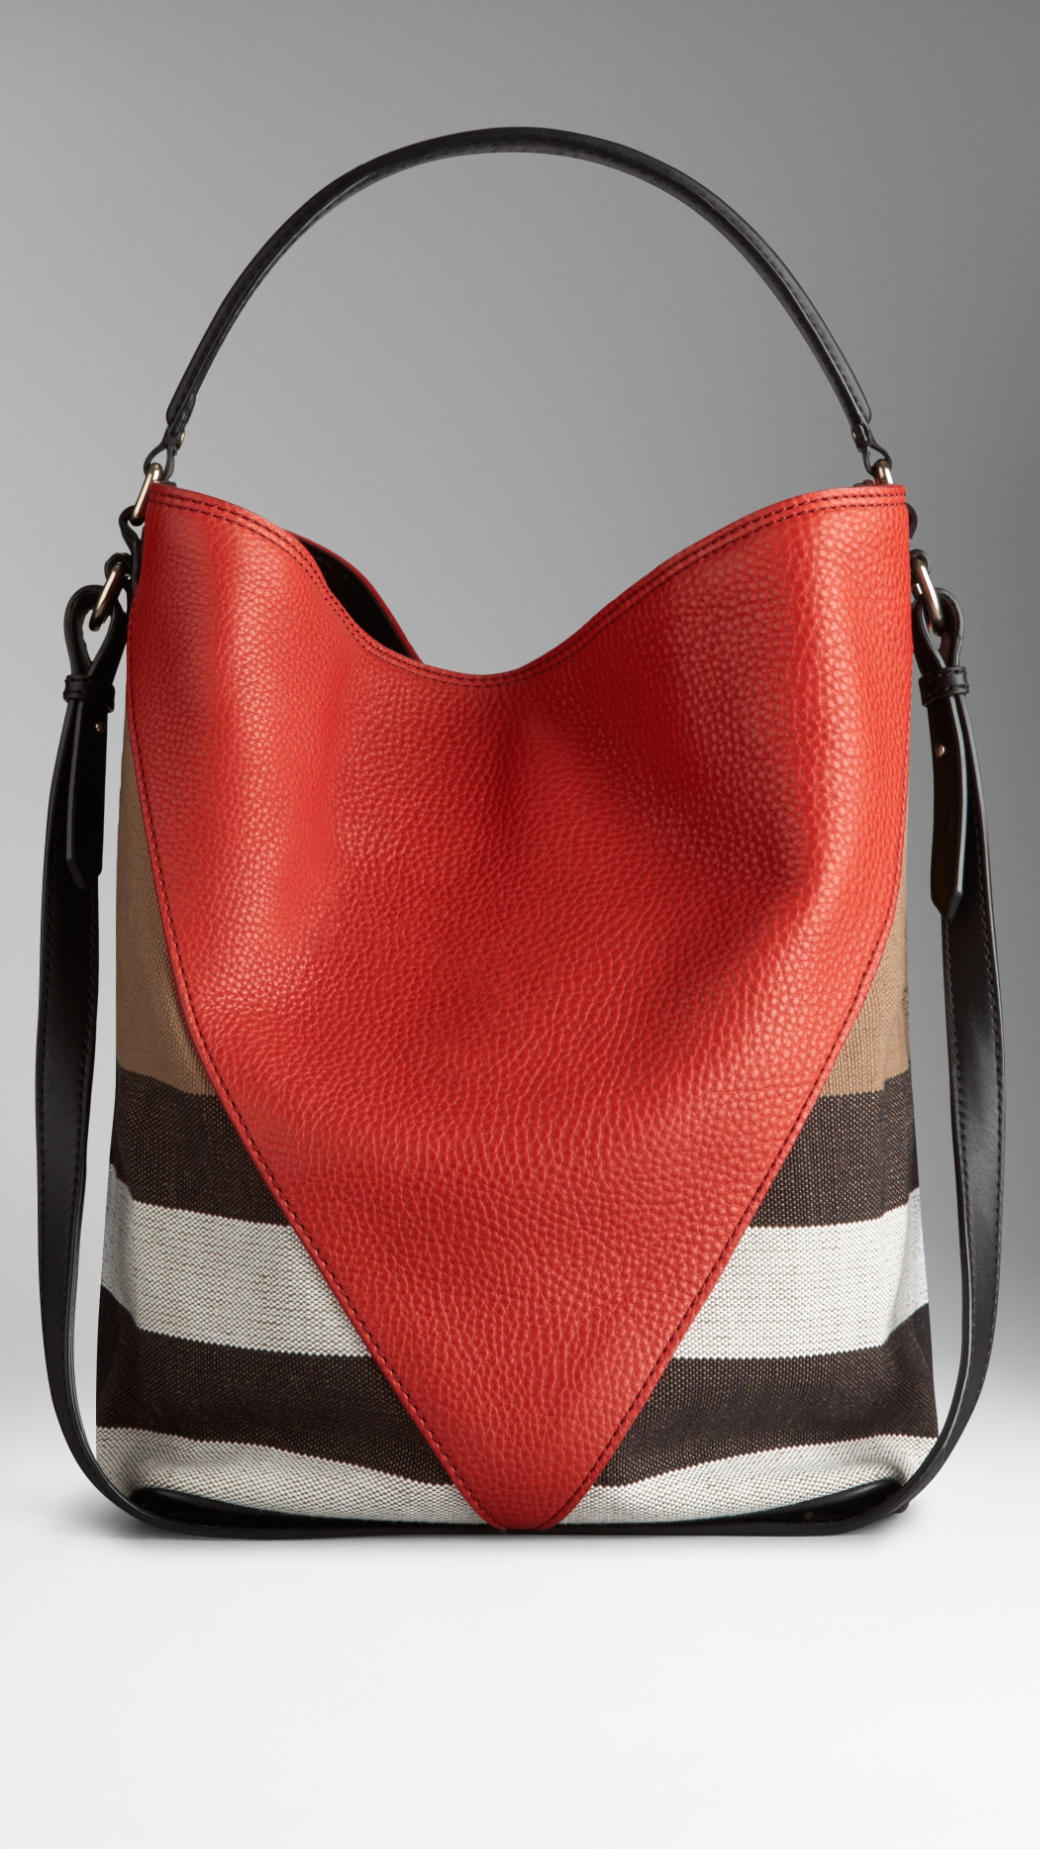 d2728ca5278 Burberry Medium Canvas Check Leather Chevron Hobo Bag in Red - Lyst